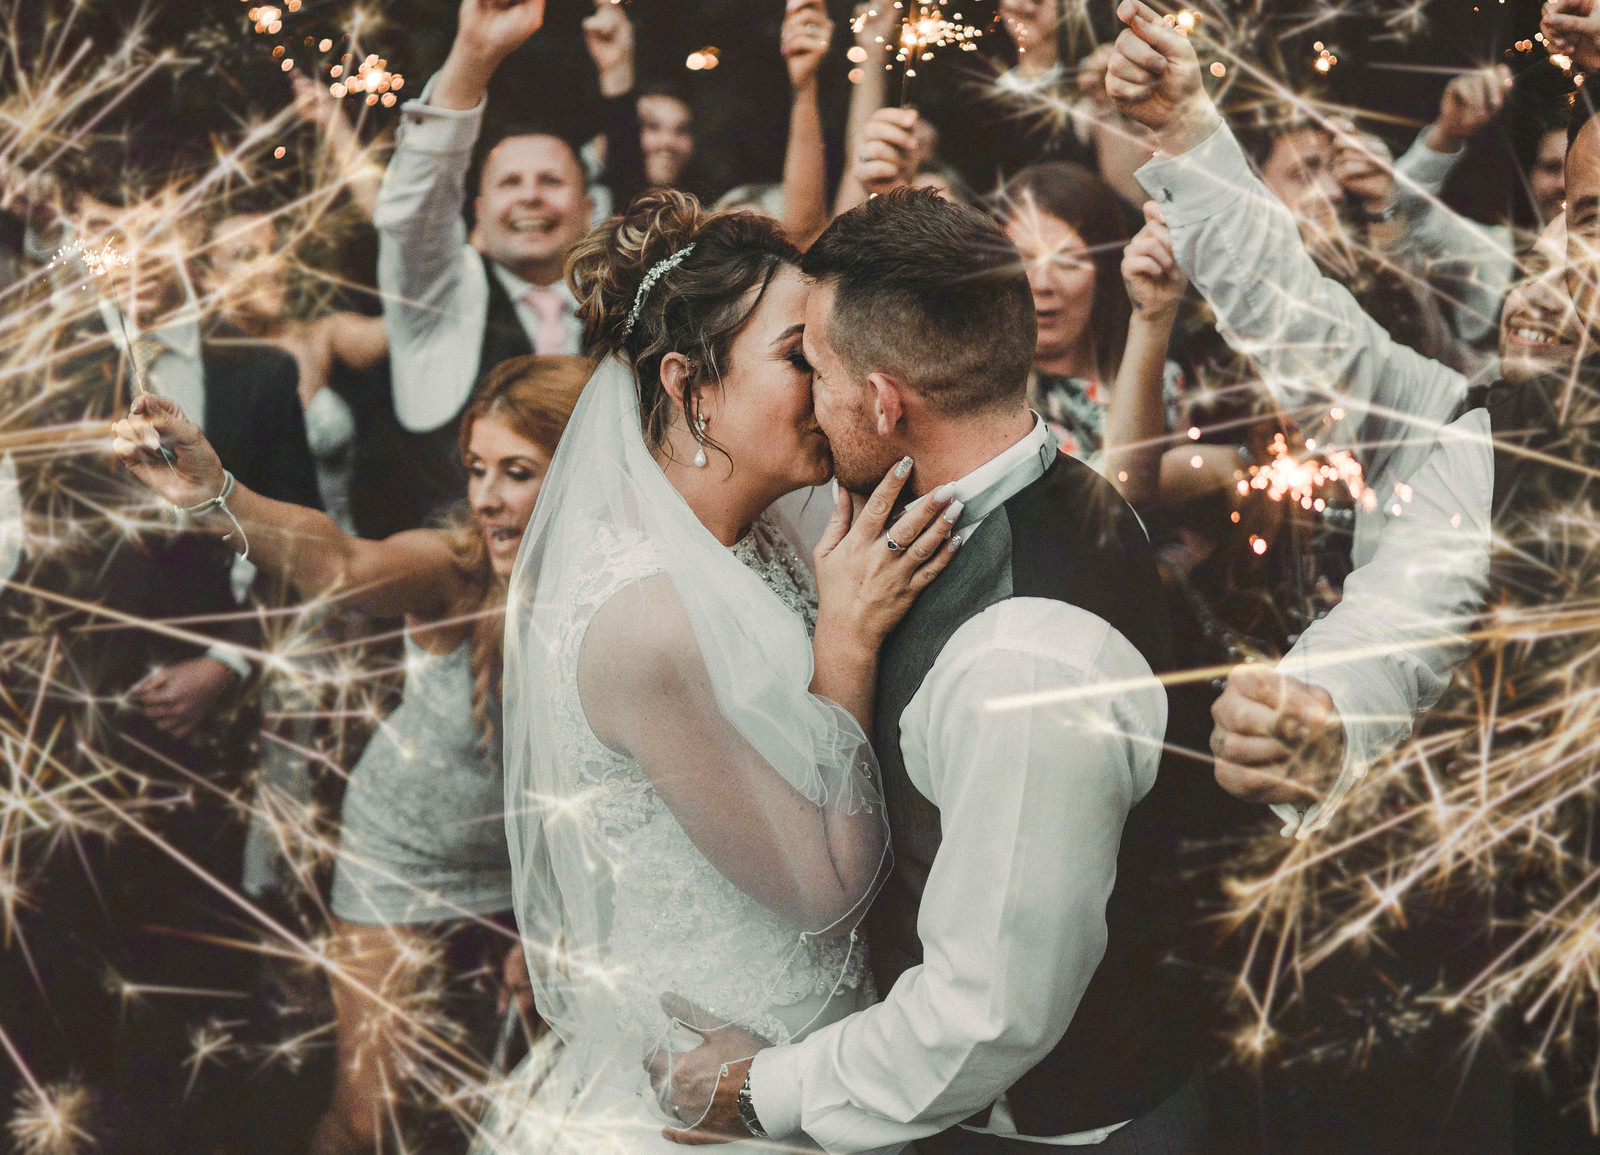 Bride and groom kiss as family and friends wave sparklers around them - Wedding Photographers Bedfordshire